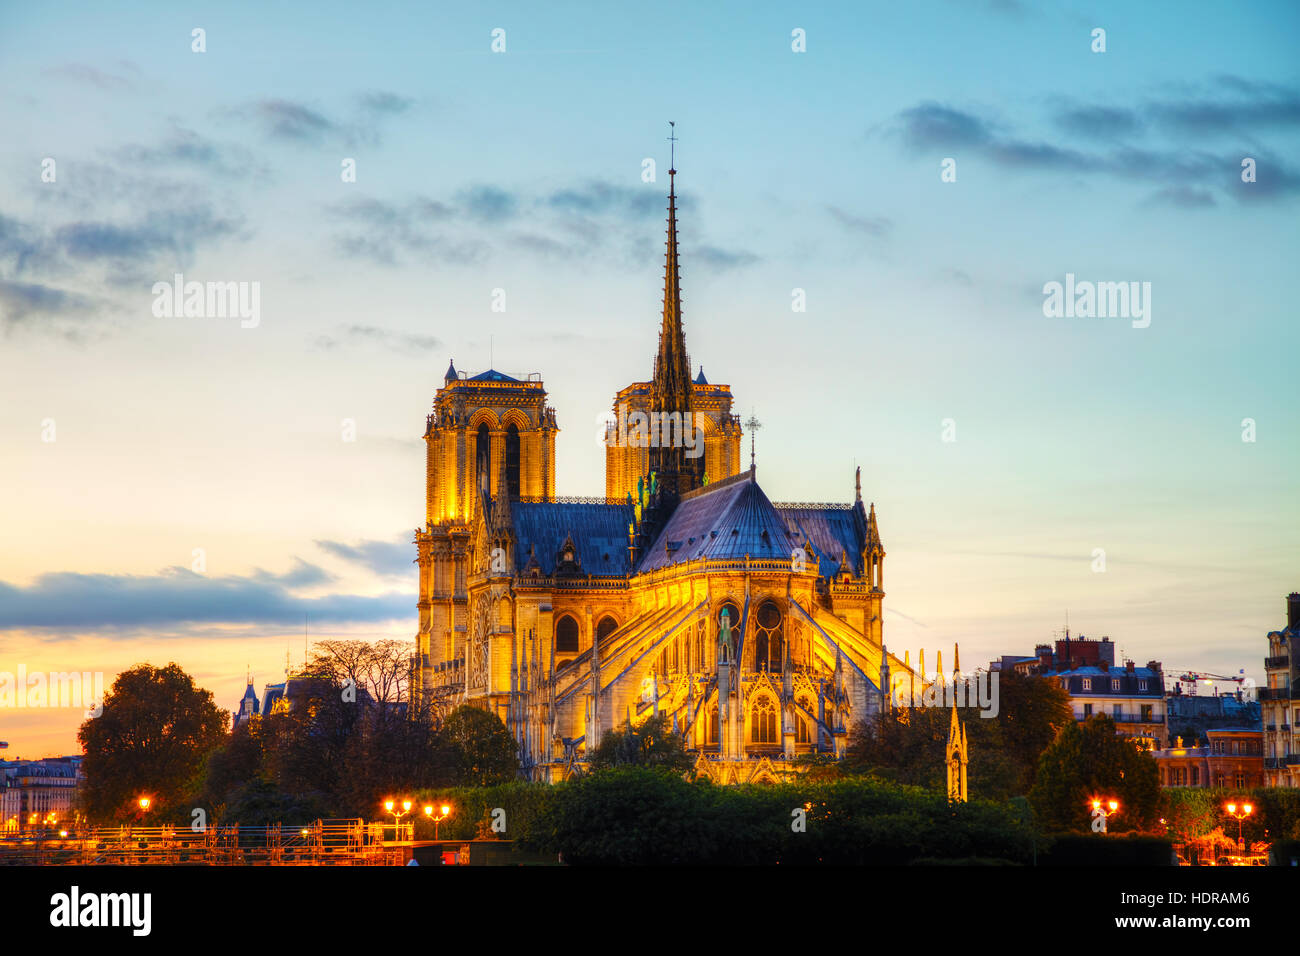 Notre Dame de Paris cathedral at night Stock Photo